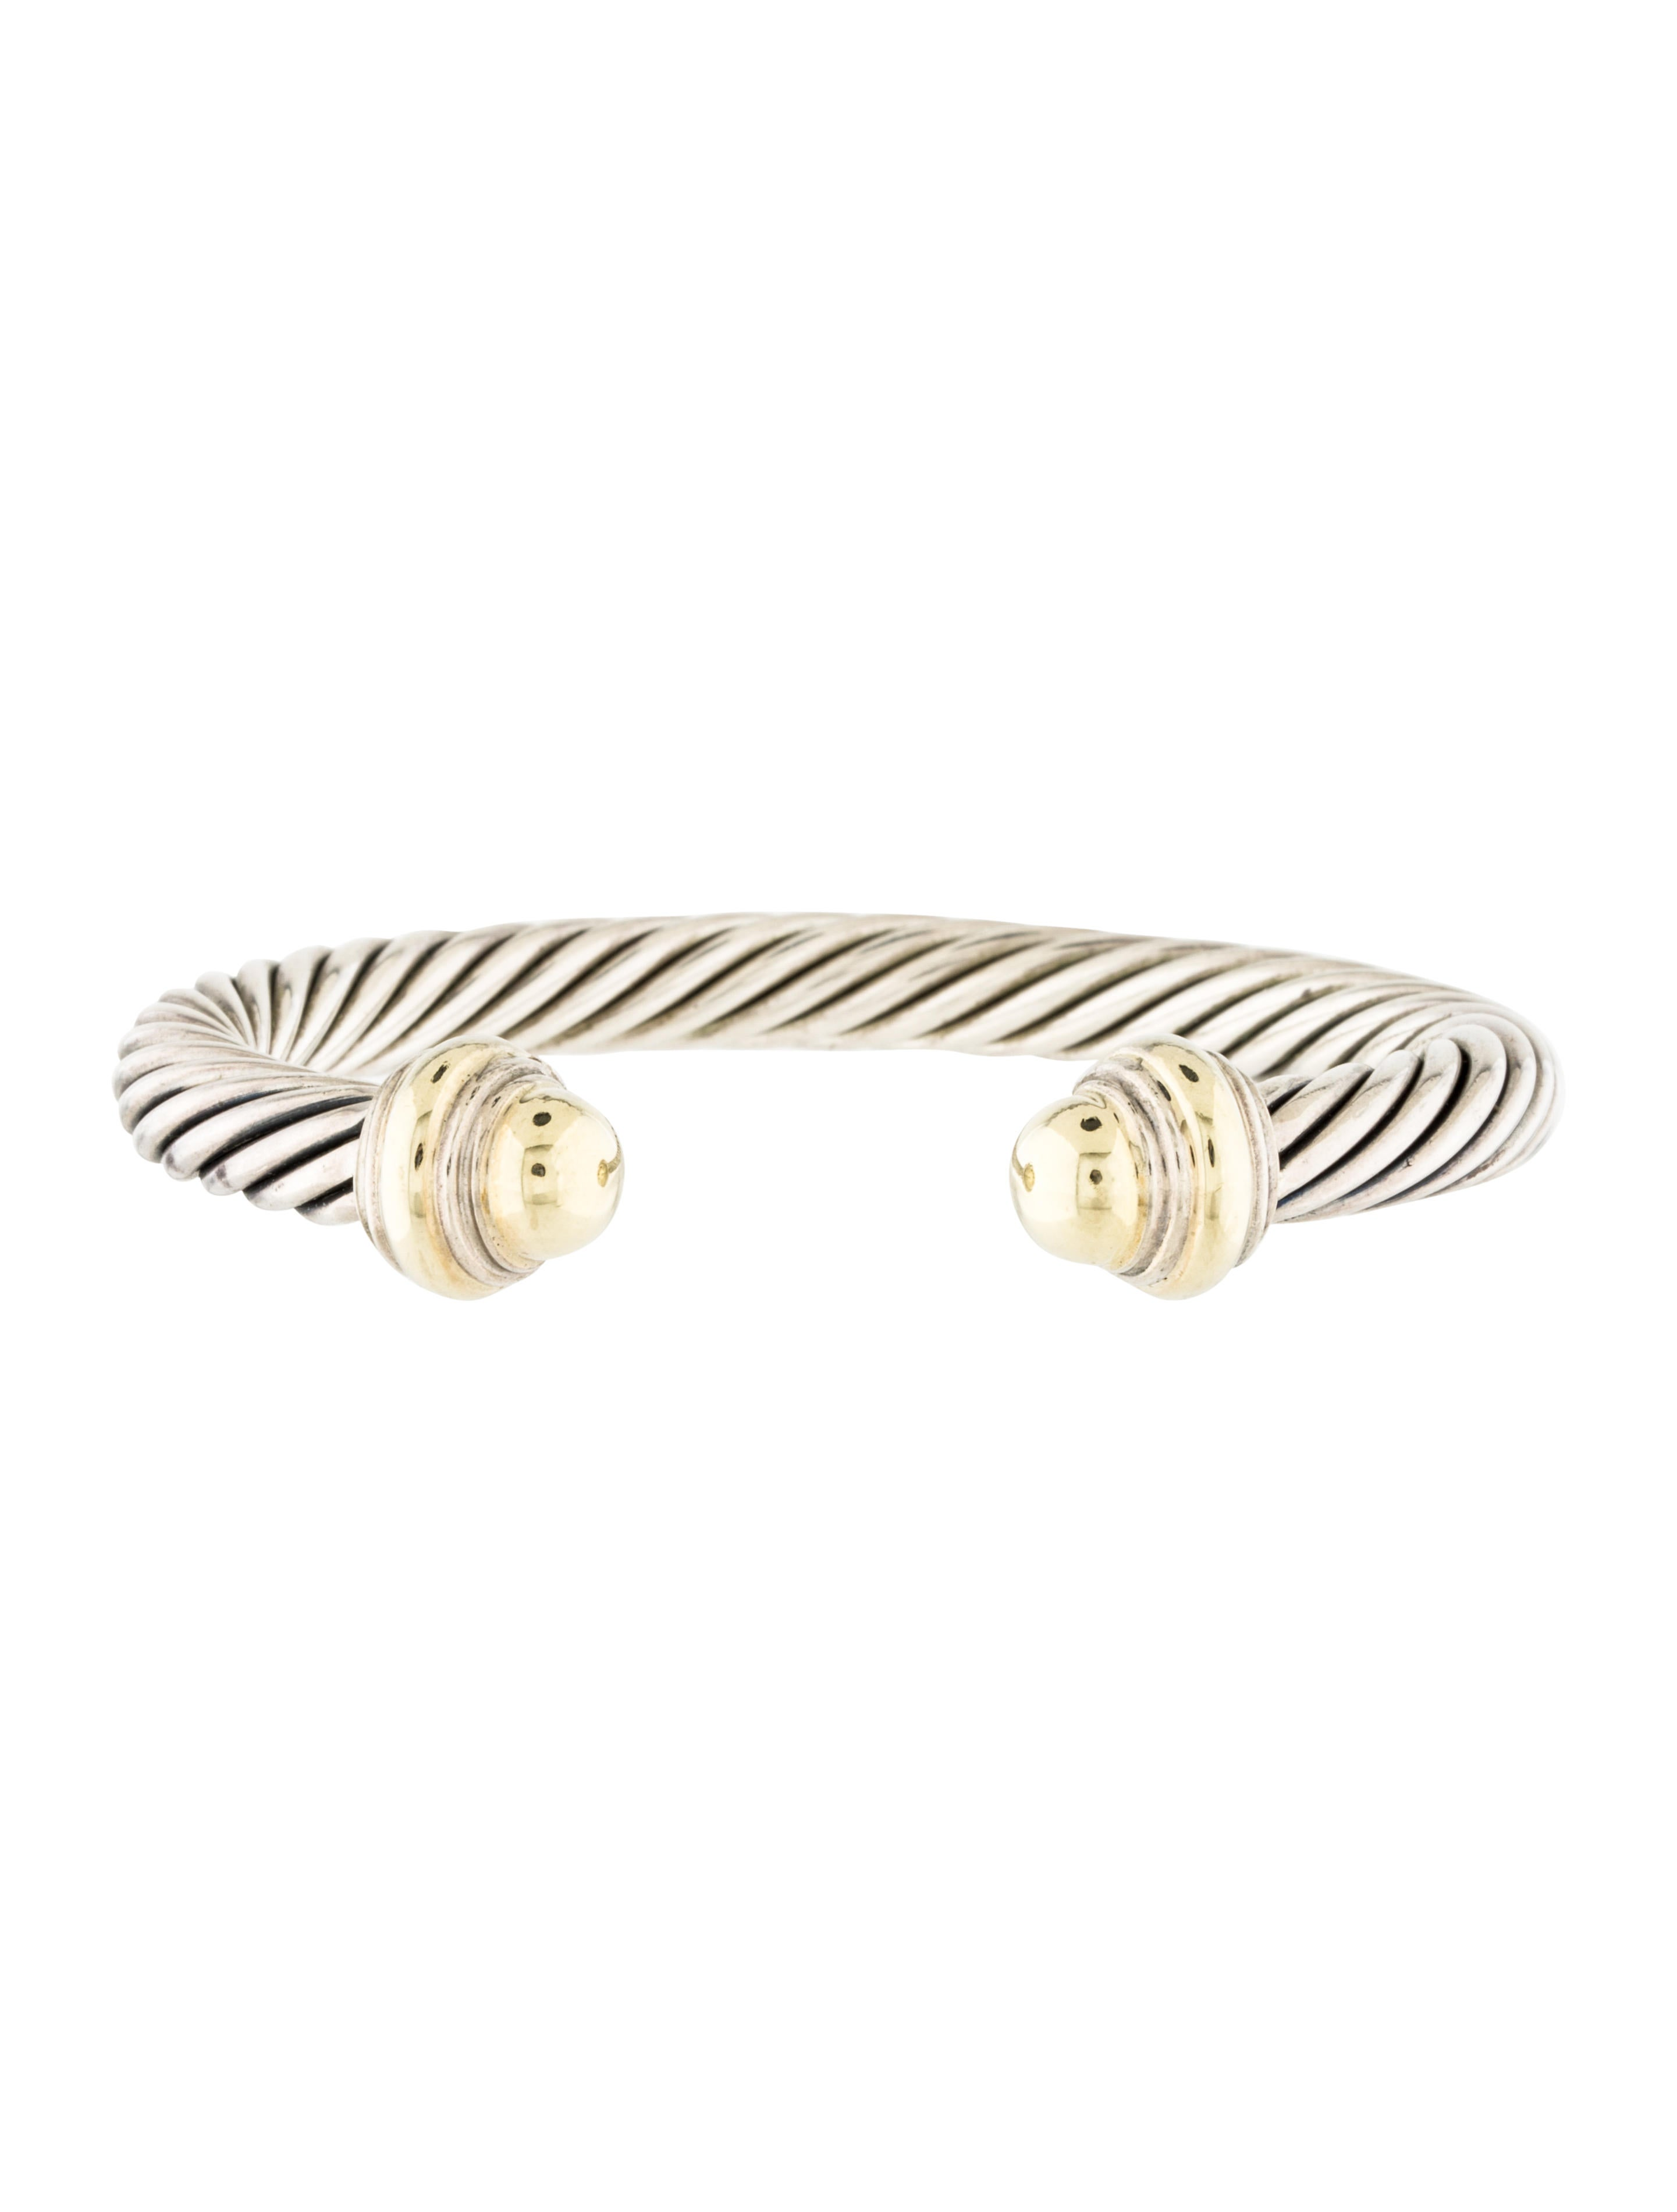 David yurman two tone cable classics cuff bracelet for David yurman inspired bracelet cable